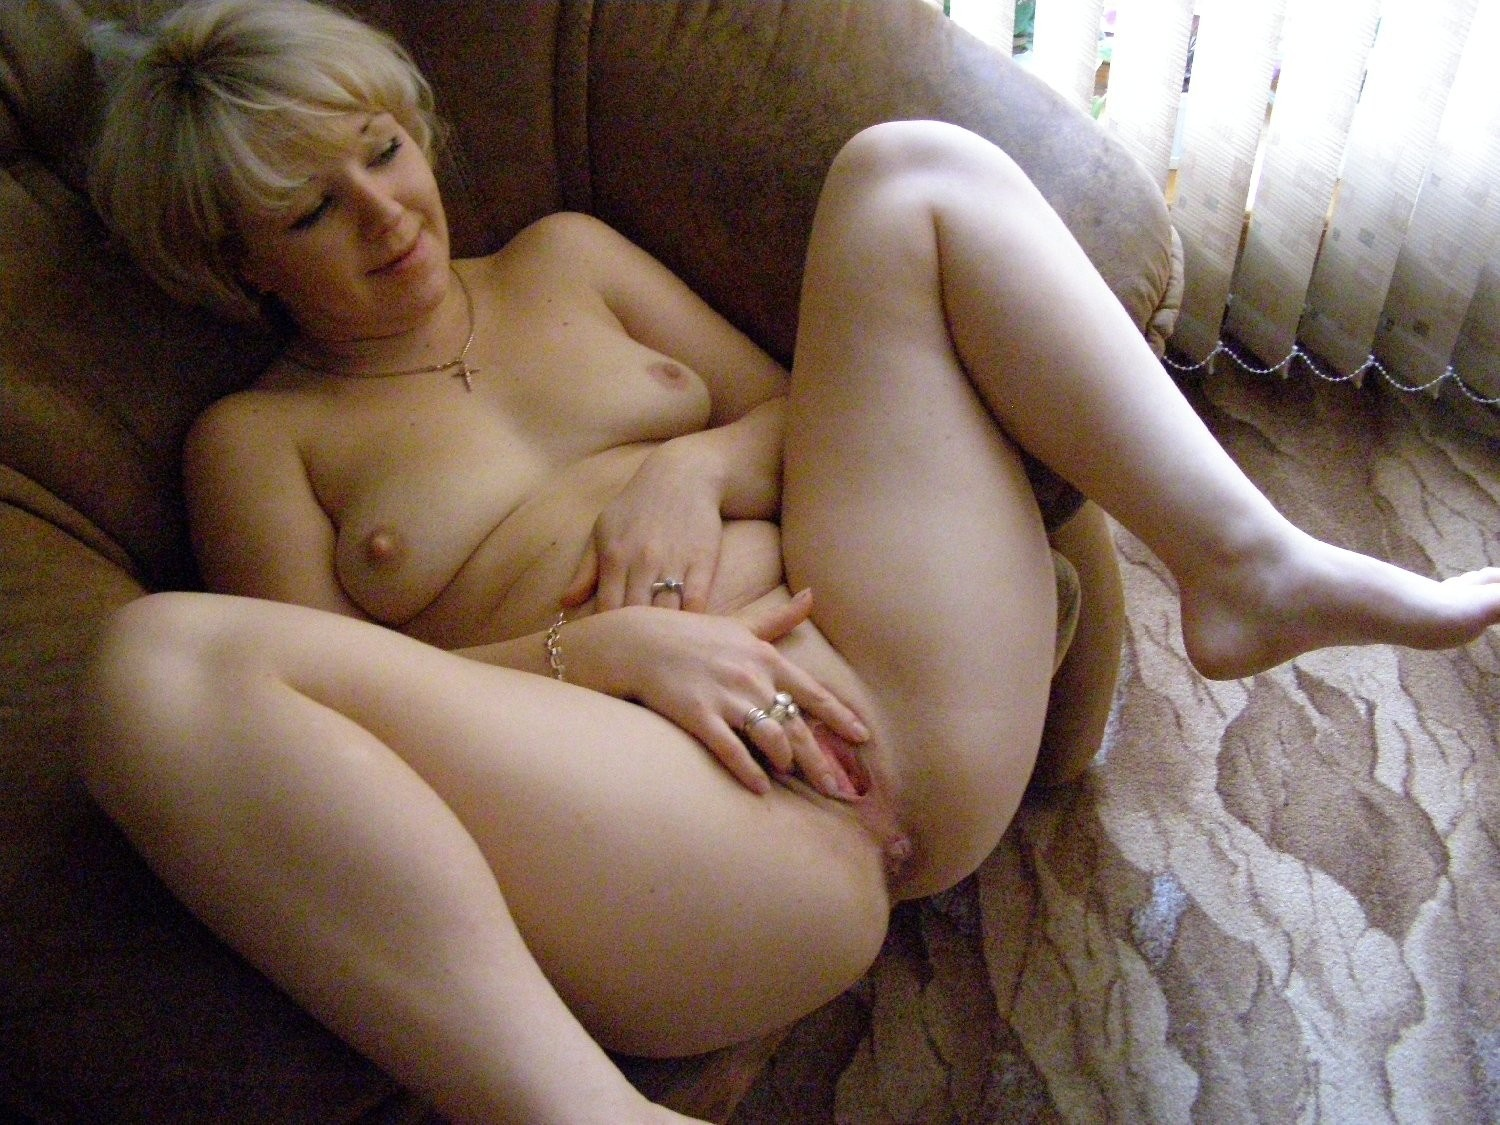 Old lady nude pics | XXX Porn Library